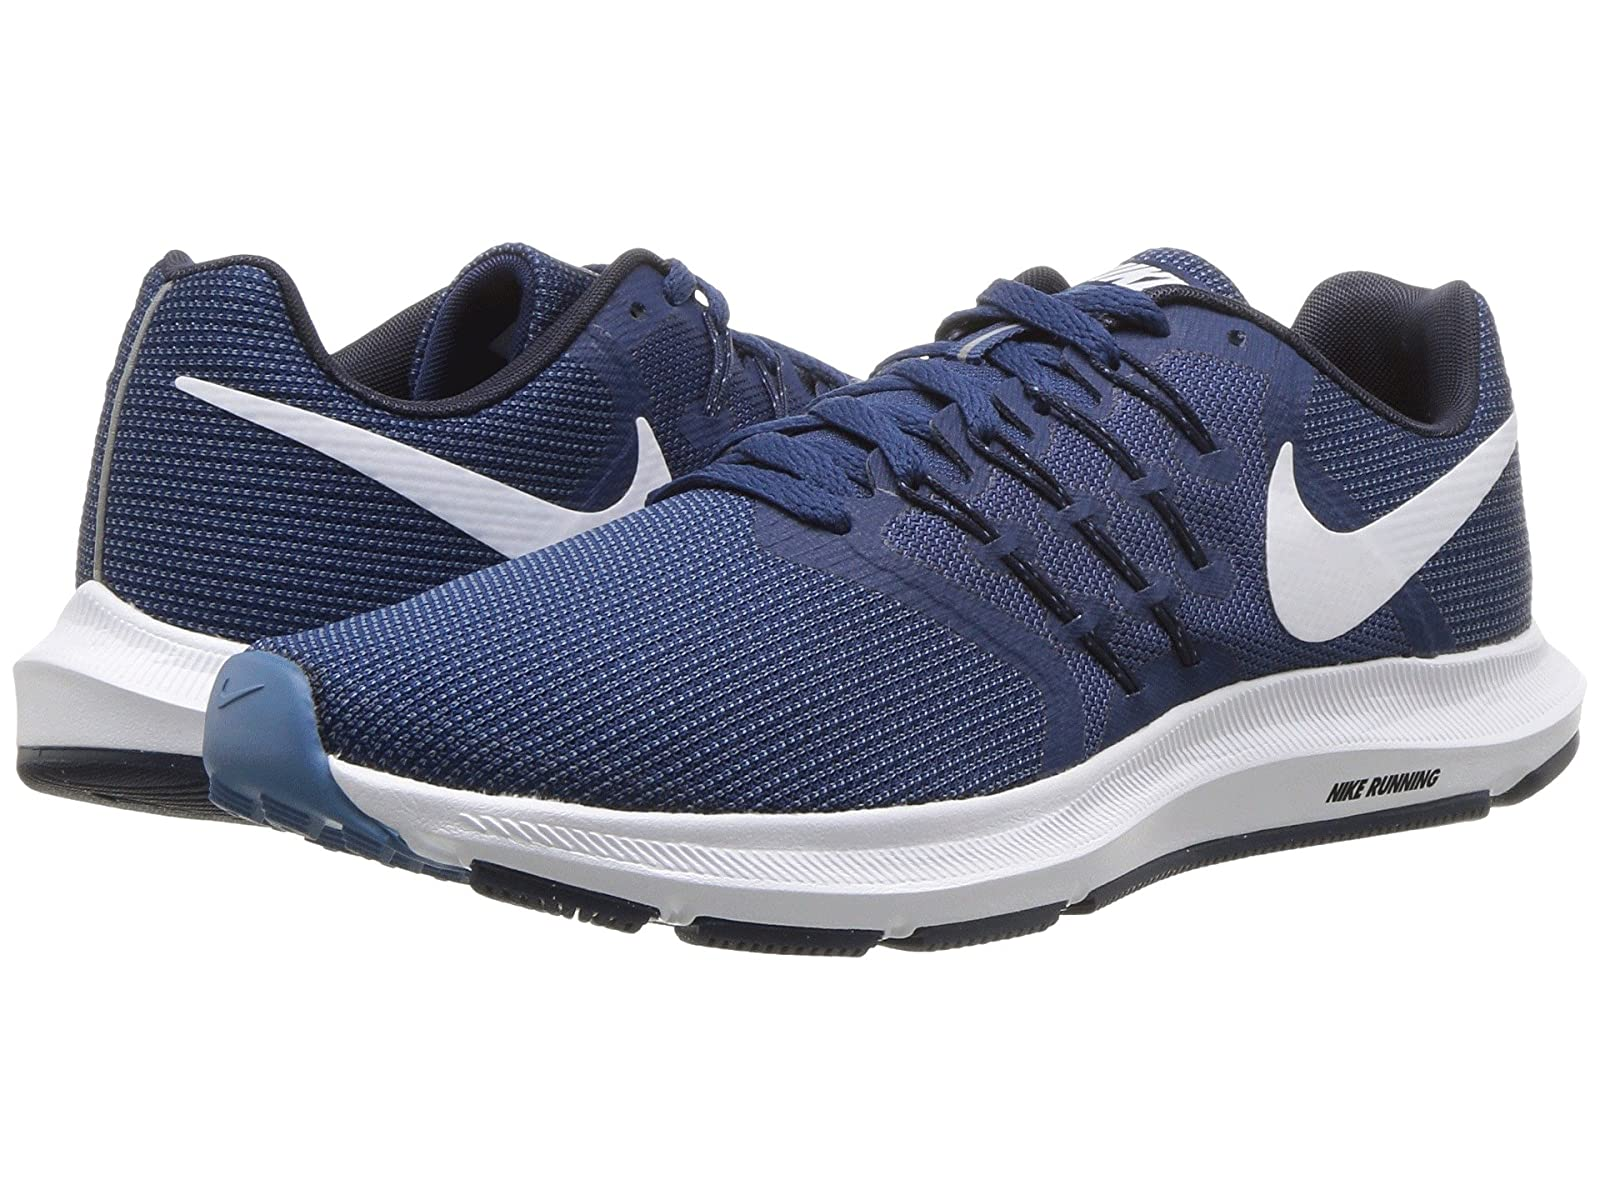 Nike Run SwiftAtmospheric grades have affordable shoes